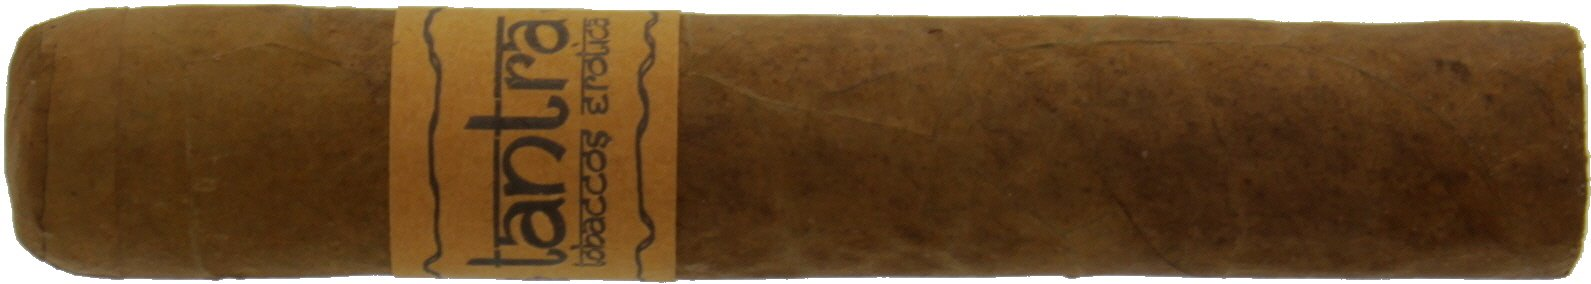 Heavenly Tantra Raaw Robusto